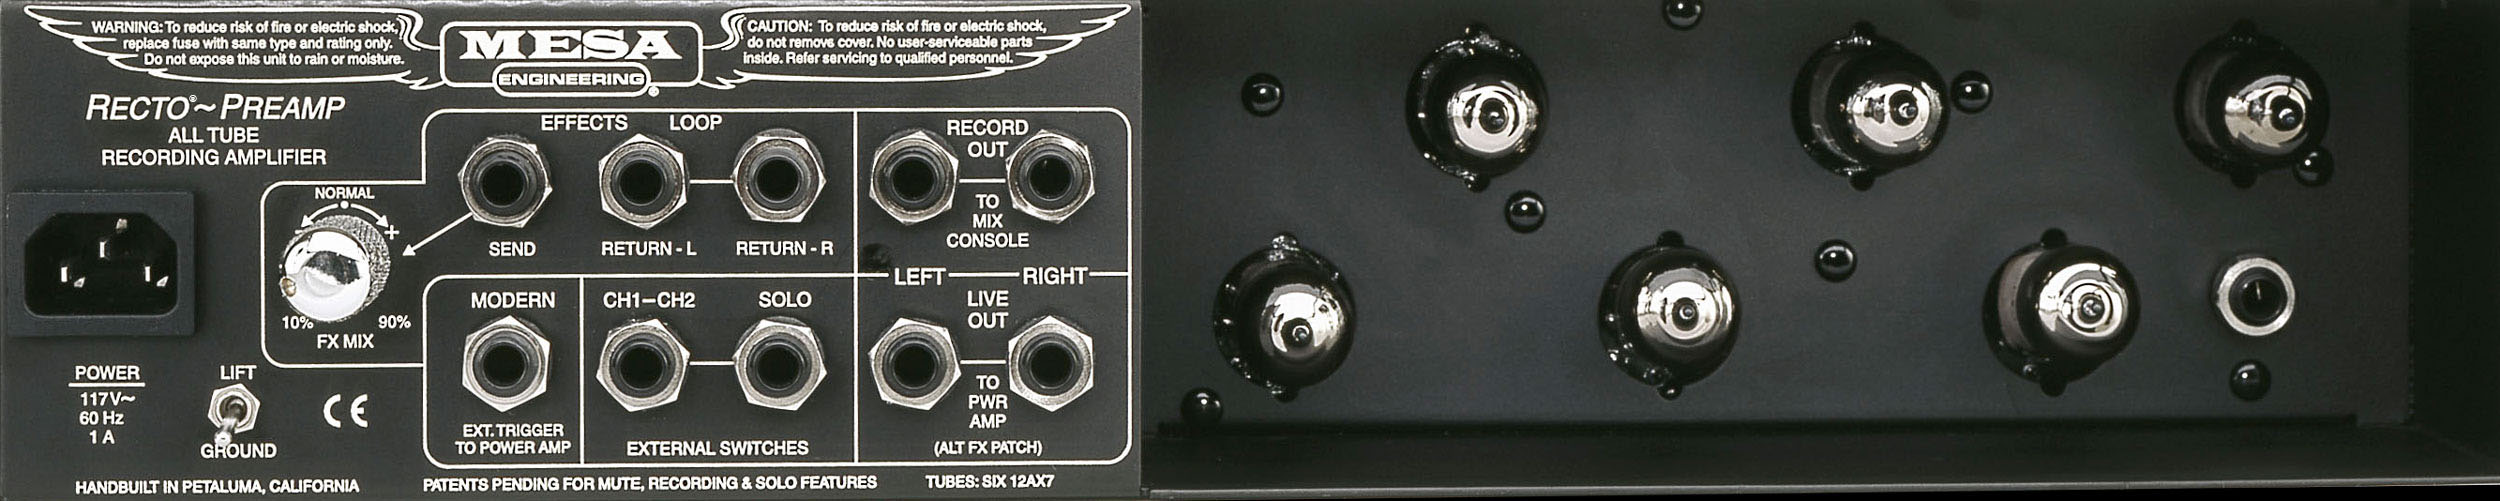 Back of the Mesa Boogie Recording Preamp